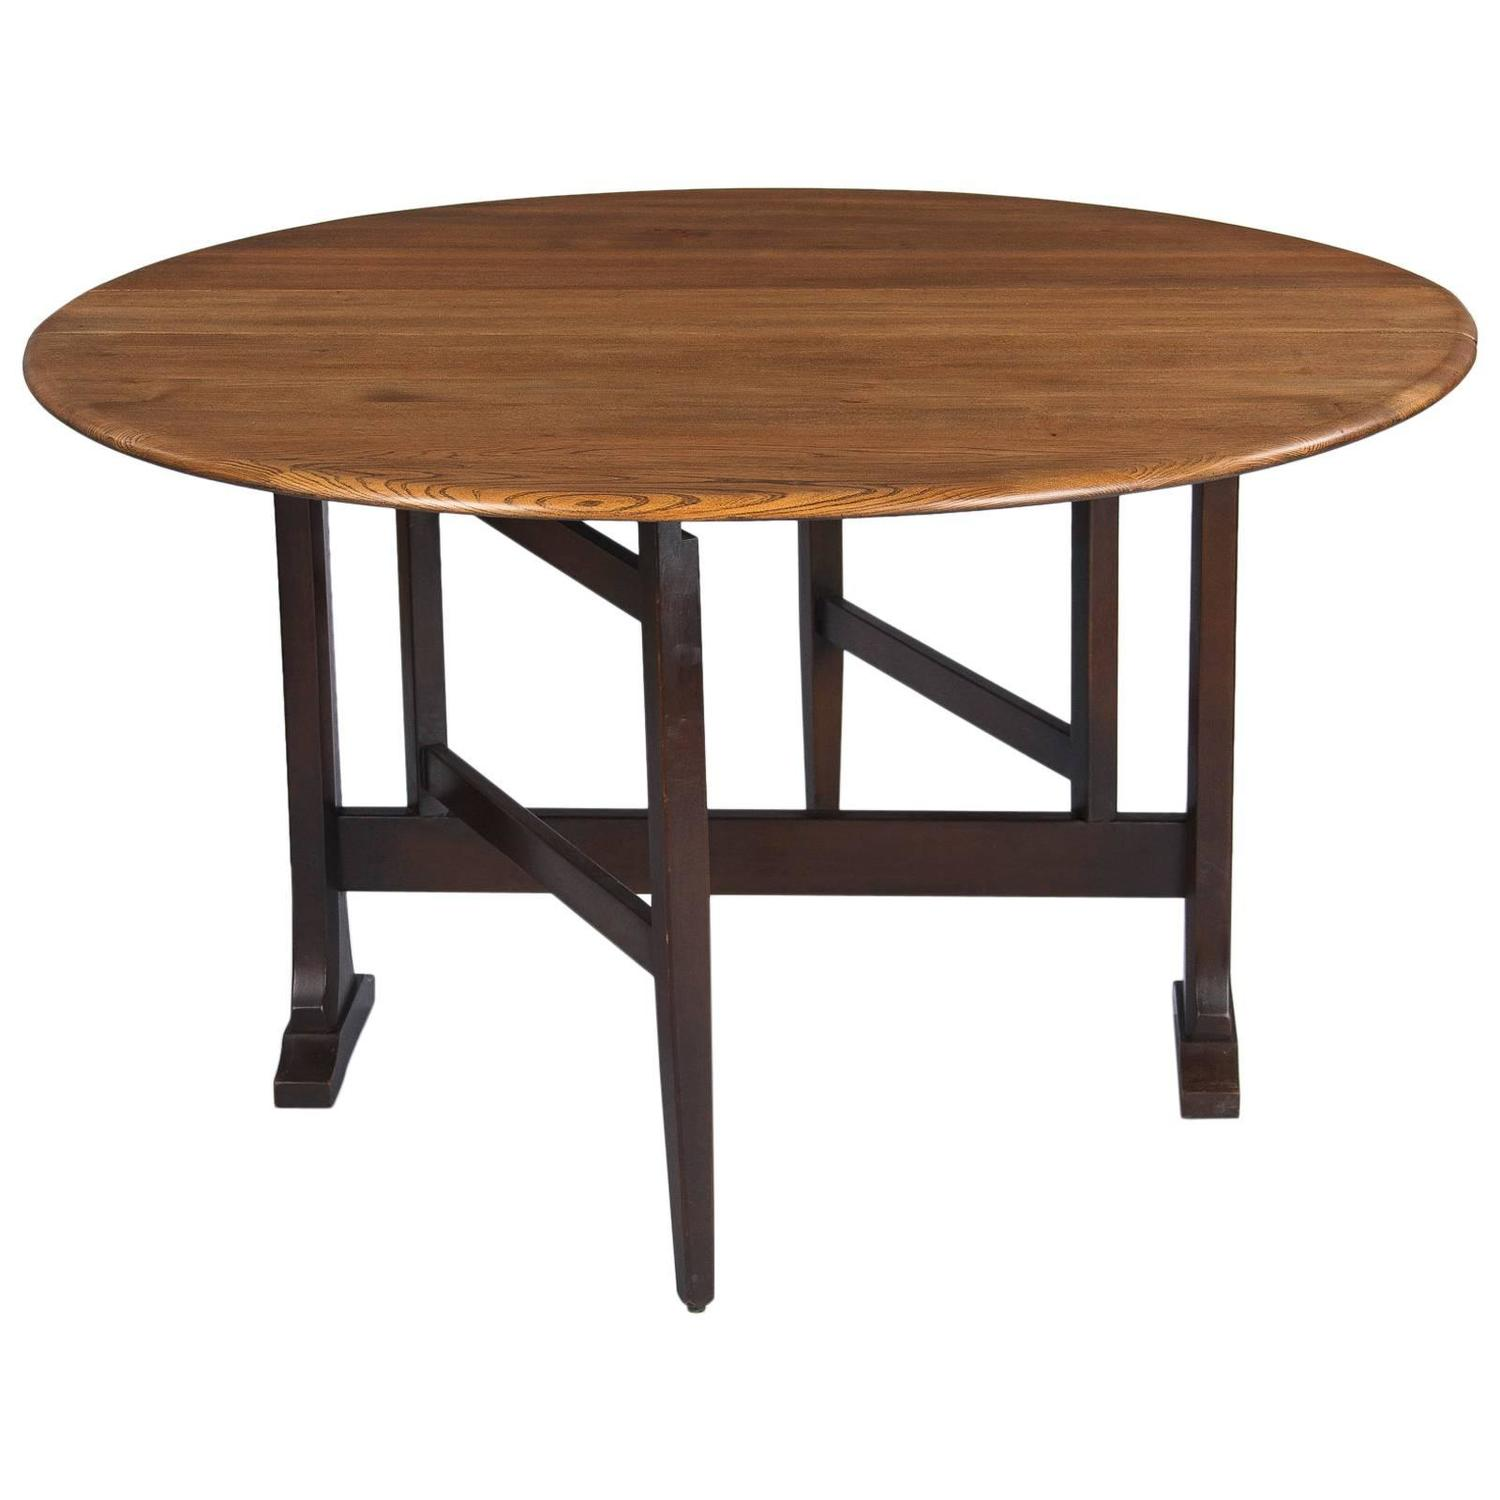 Midcentury Oak Gateleg Table by Ercol England at 1stdibs